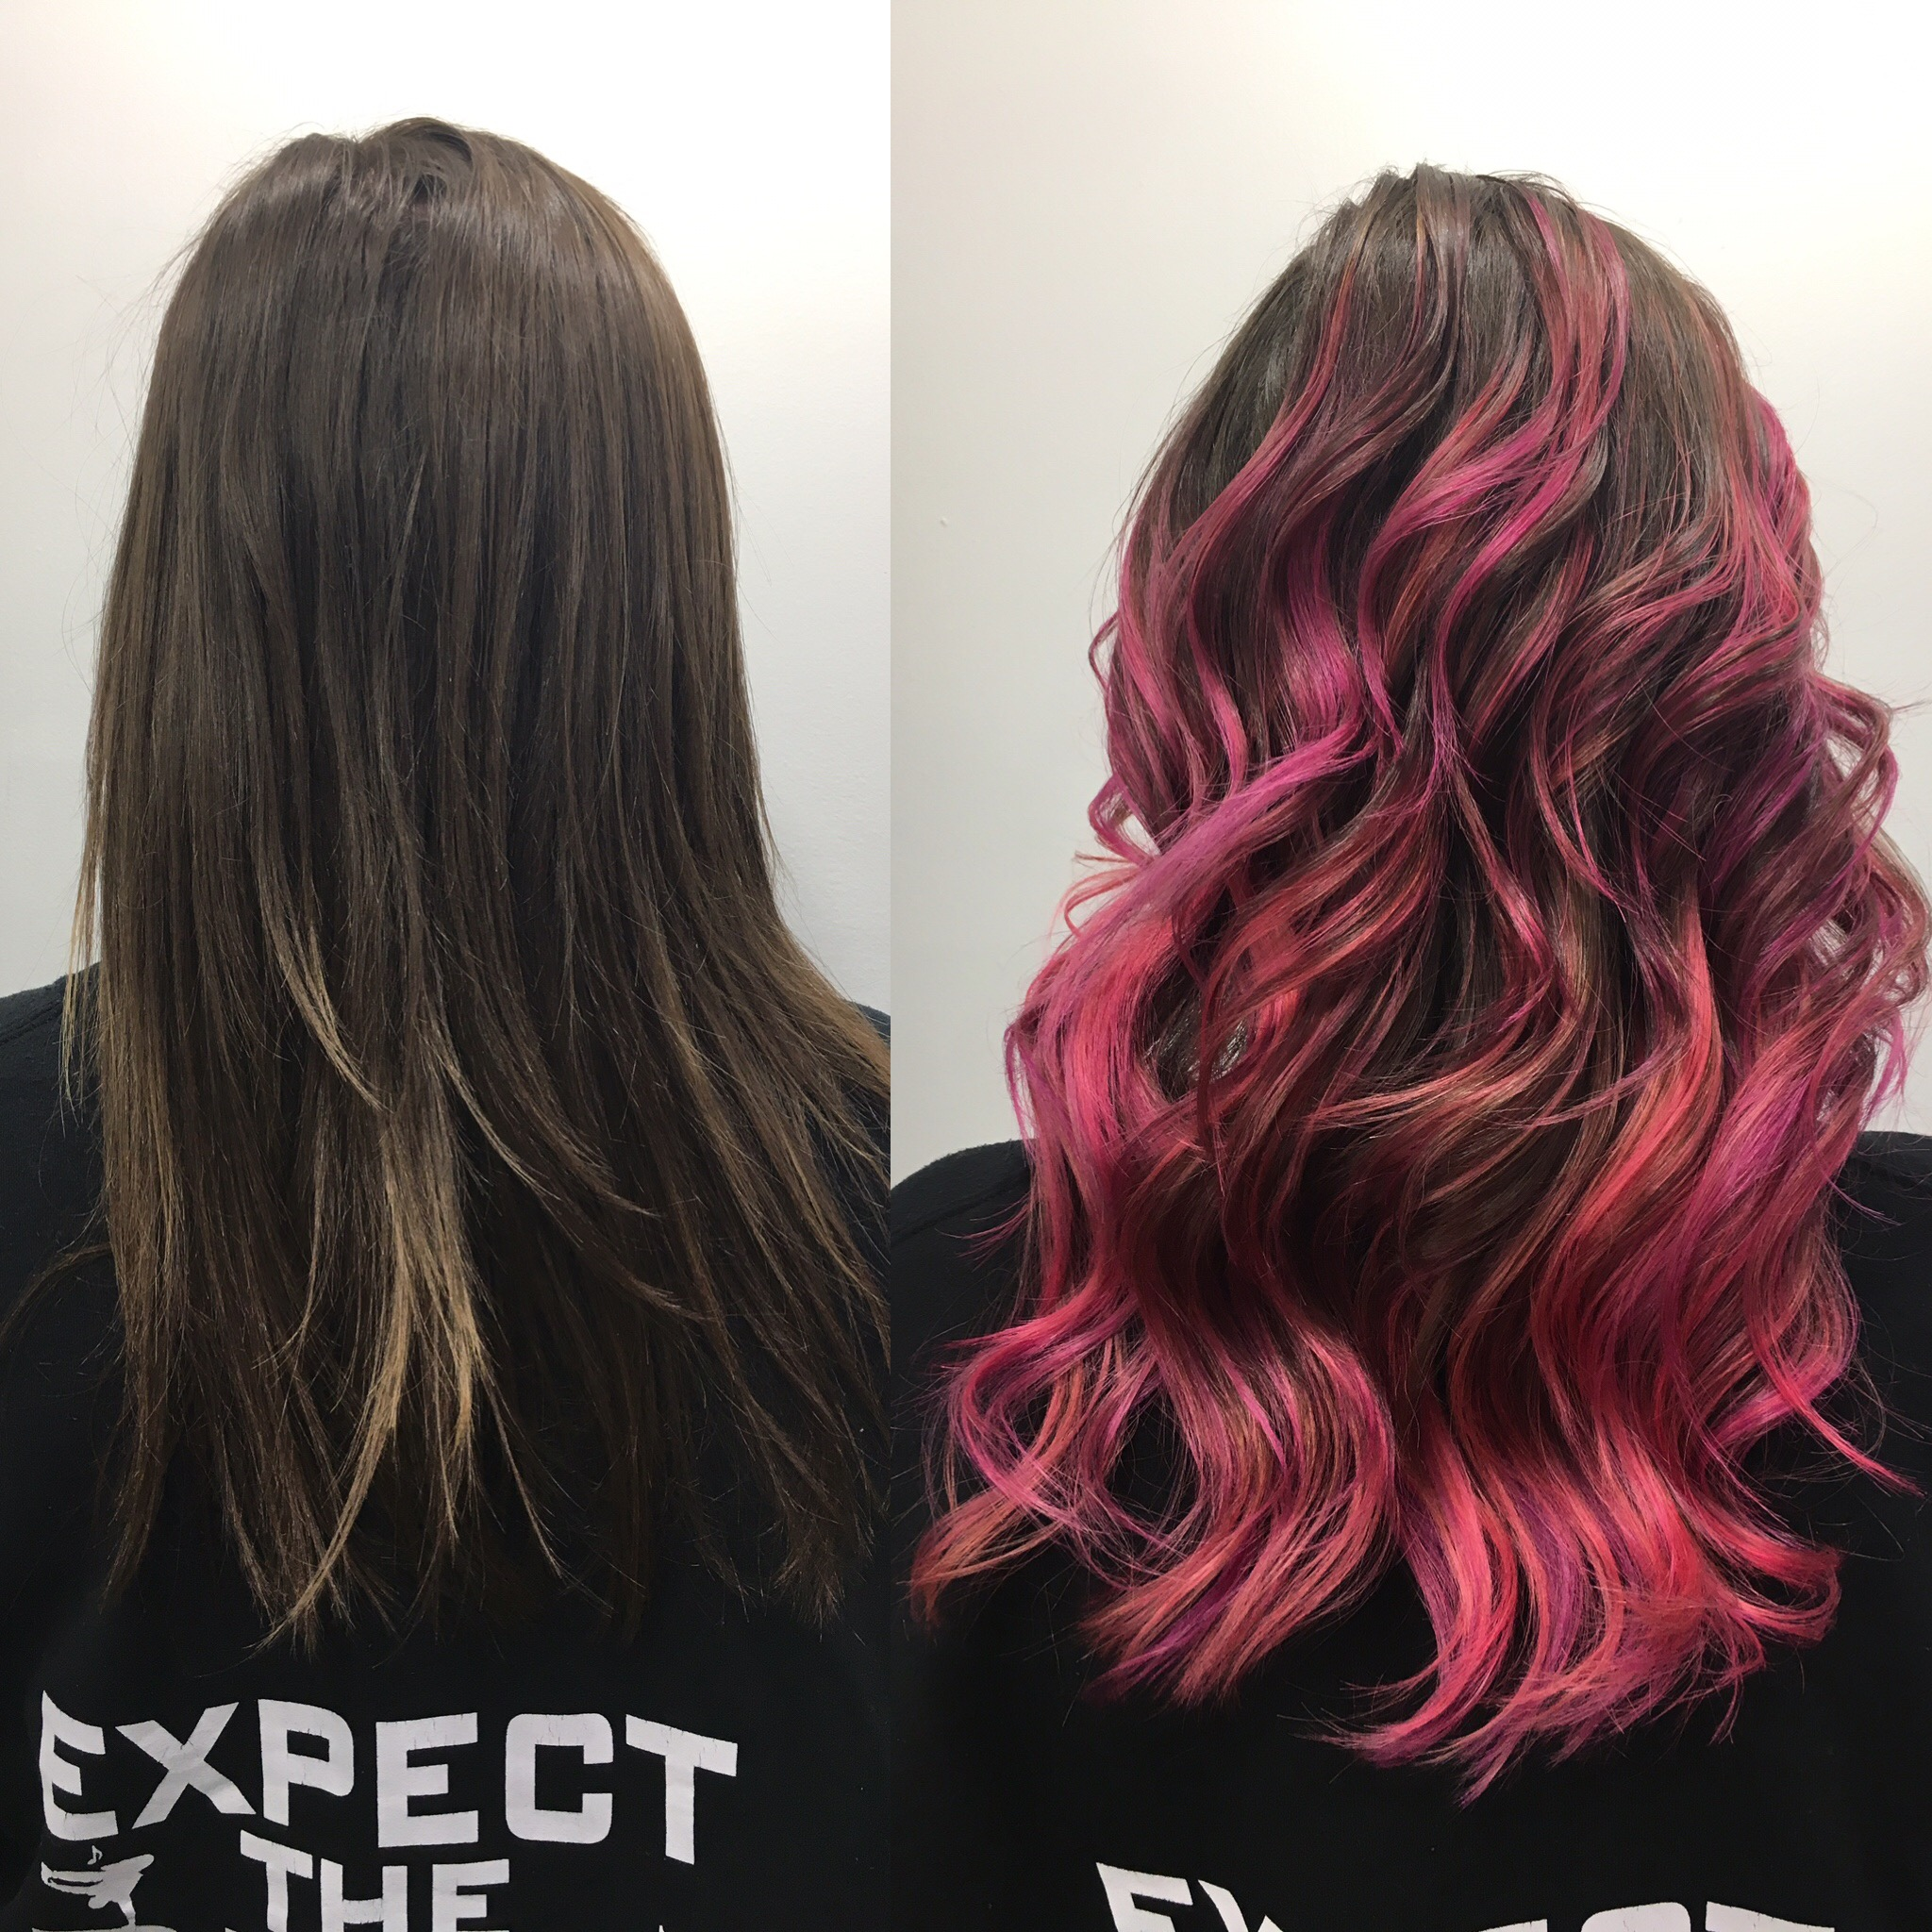 HOT PINK HAIR I MISS YOU!